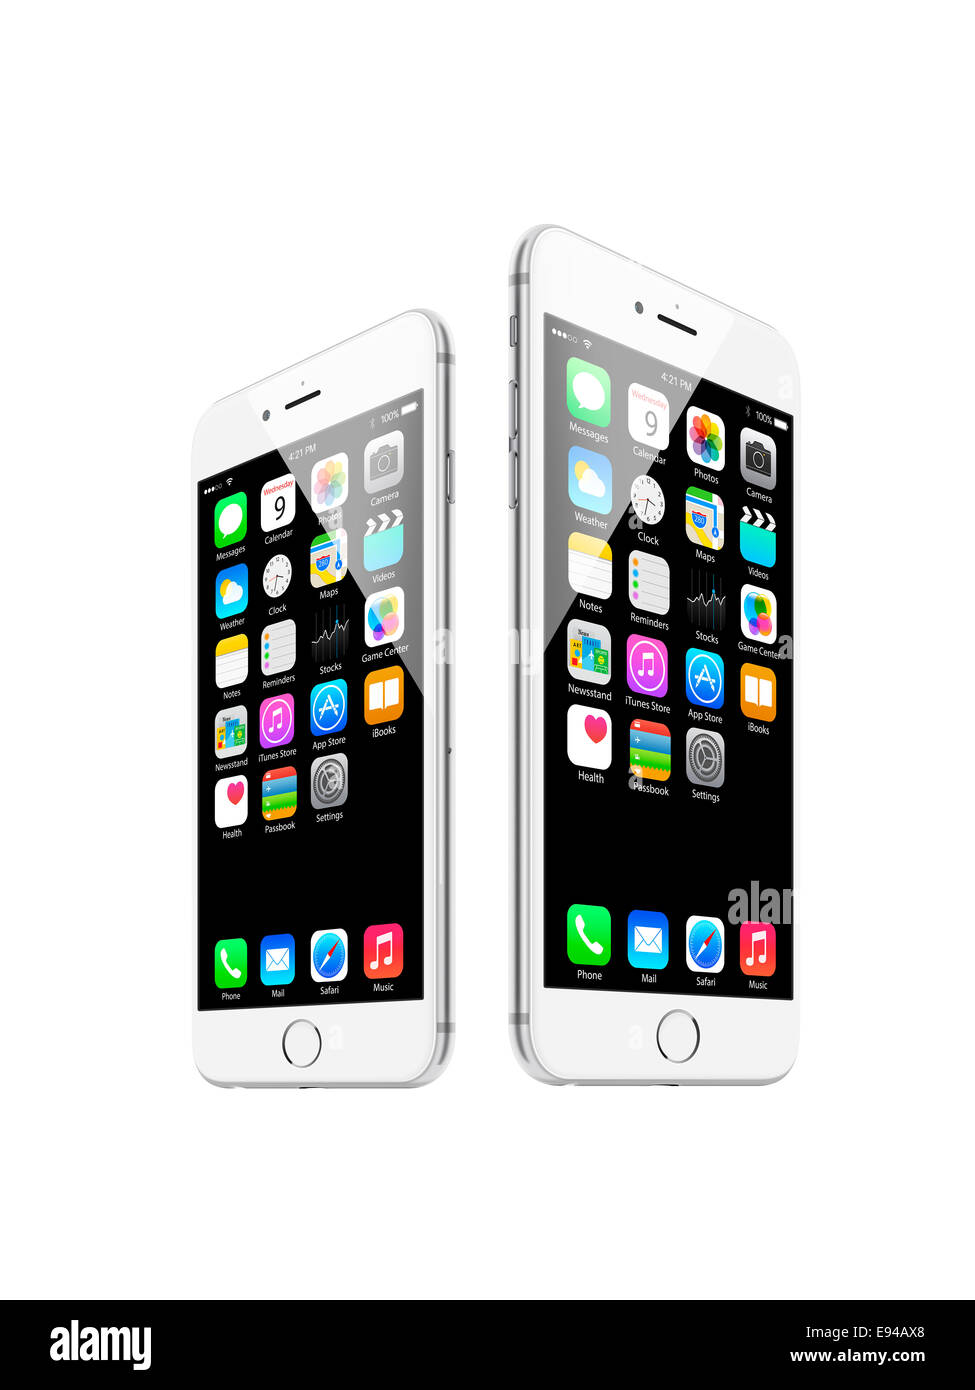 iphone 6 and iphone 6 plus silver, with apps, digitally generated artwork. - Stock Image